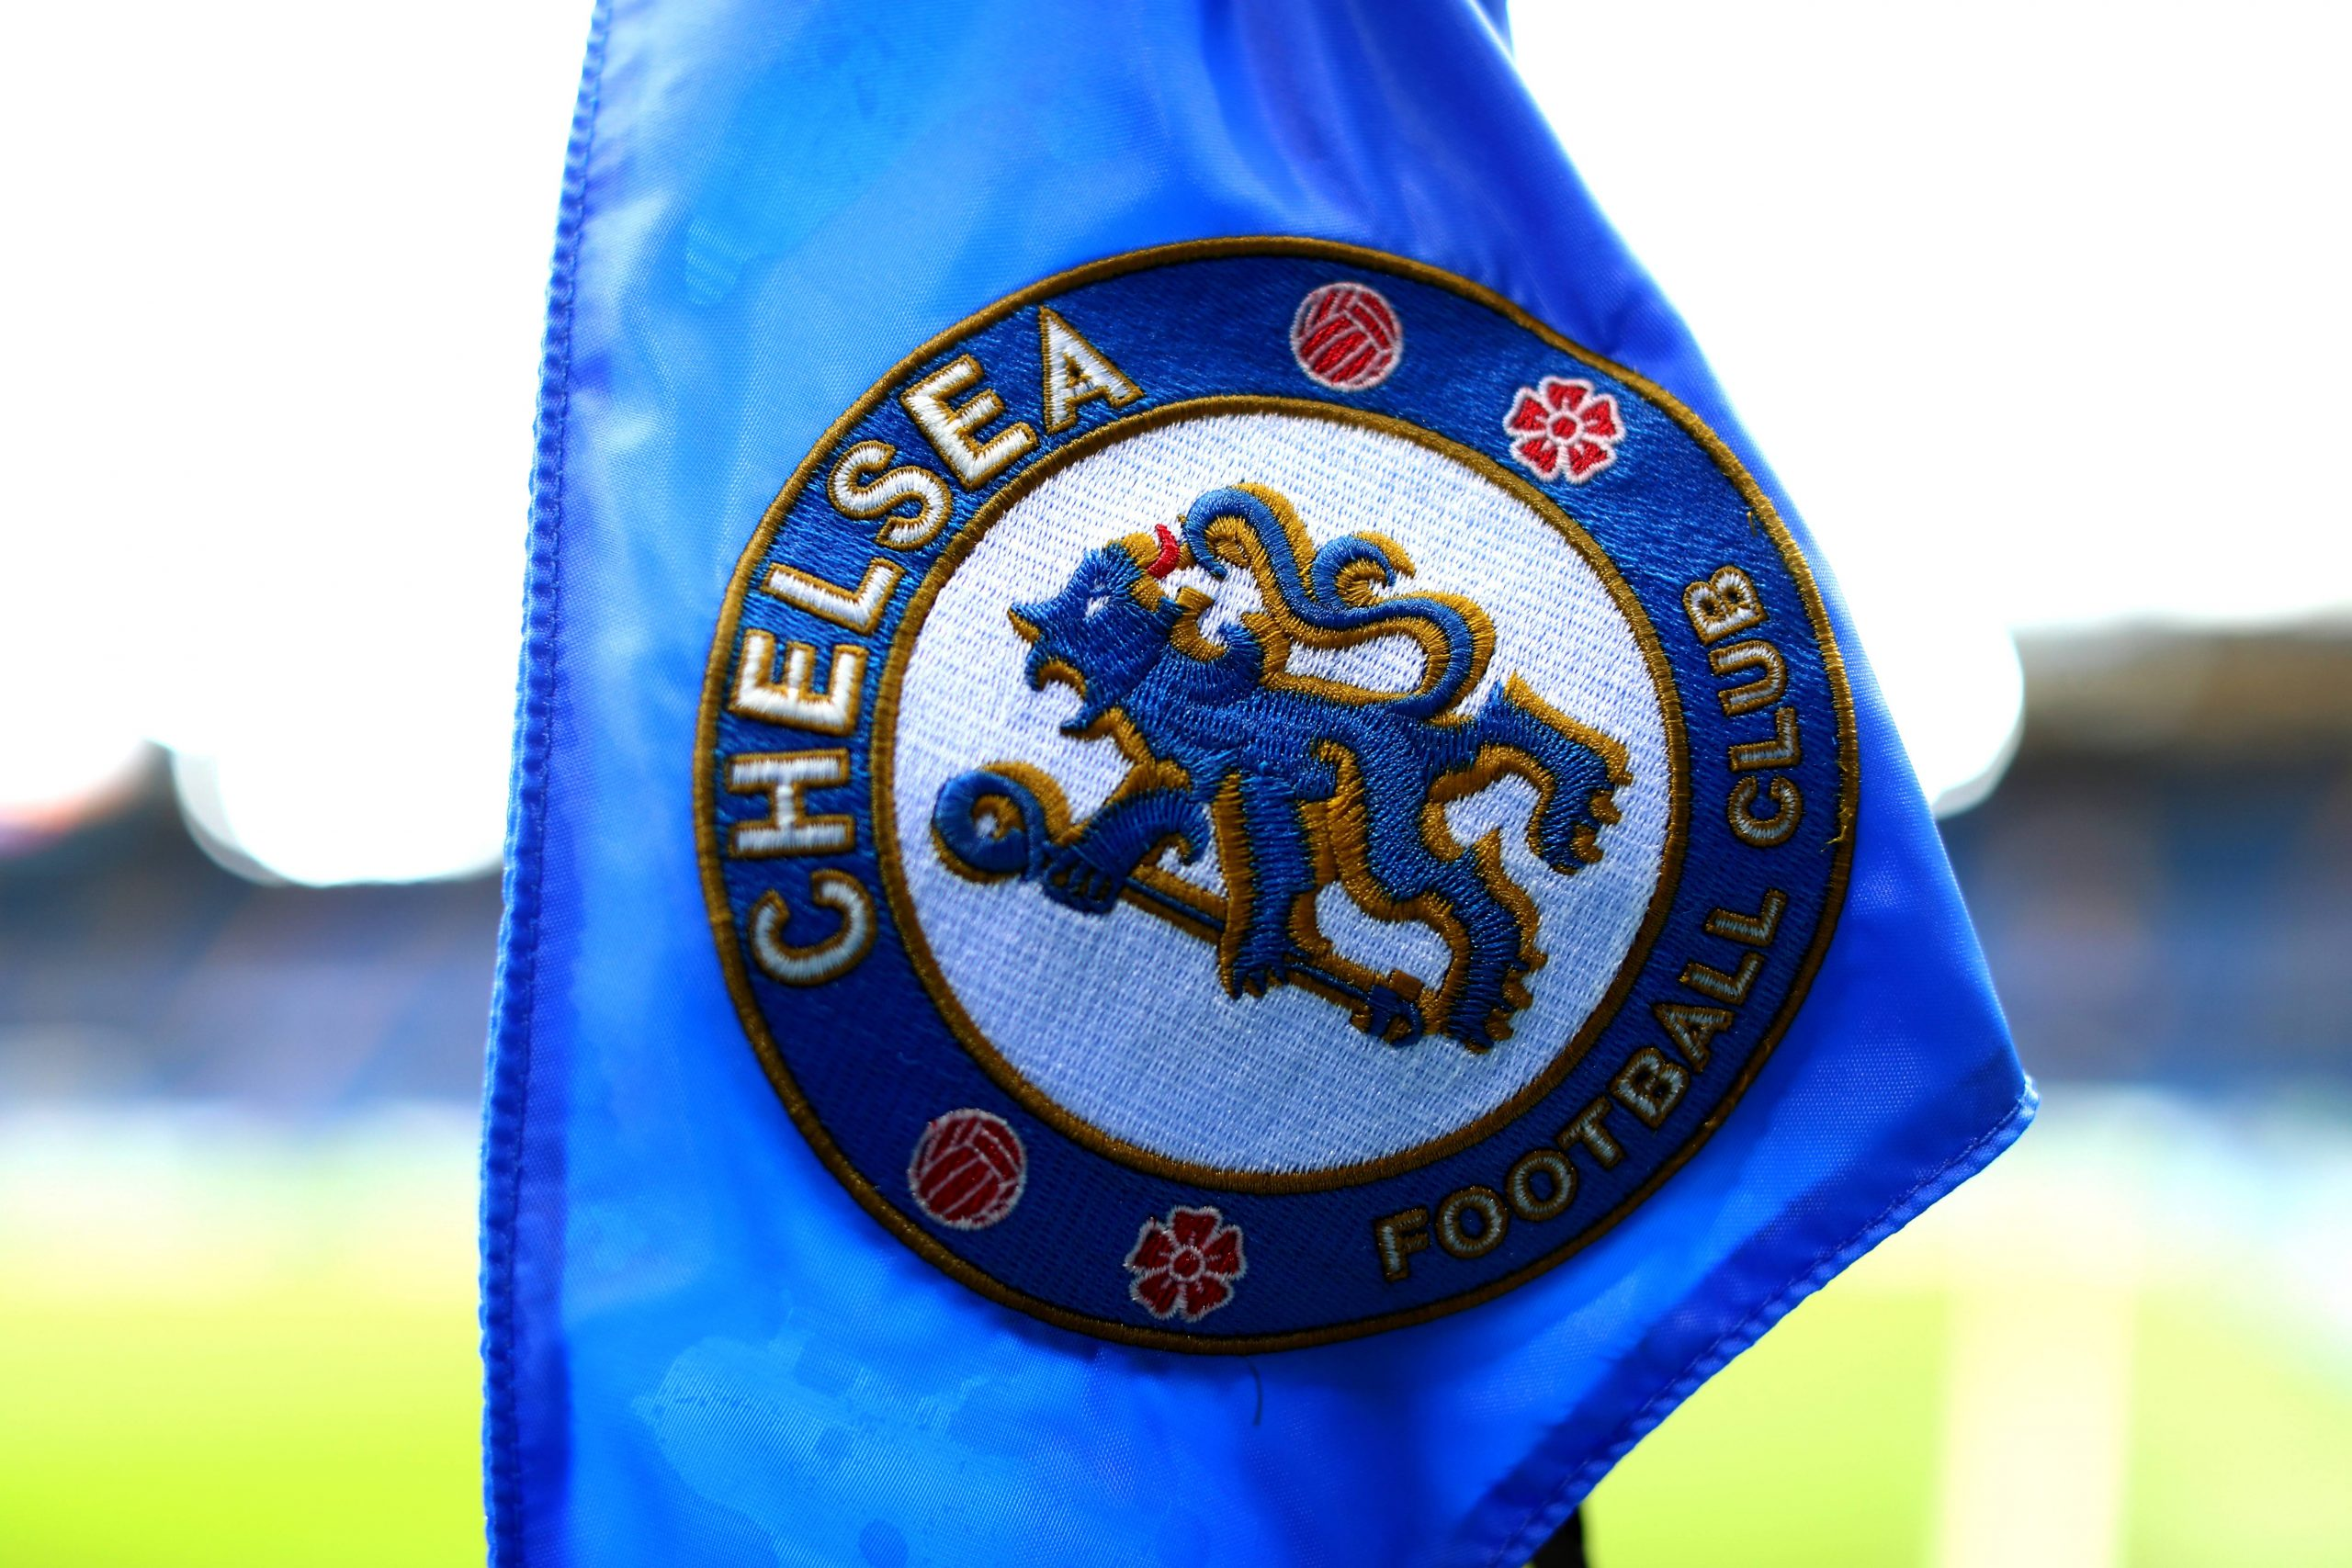 Chelsea fined by FA for disorderly conduct.